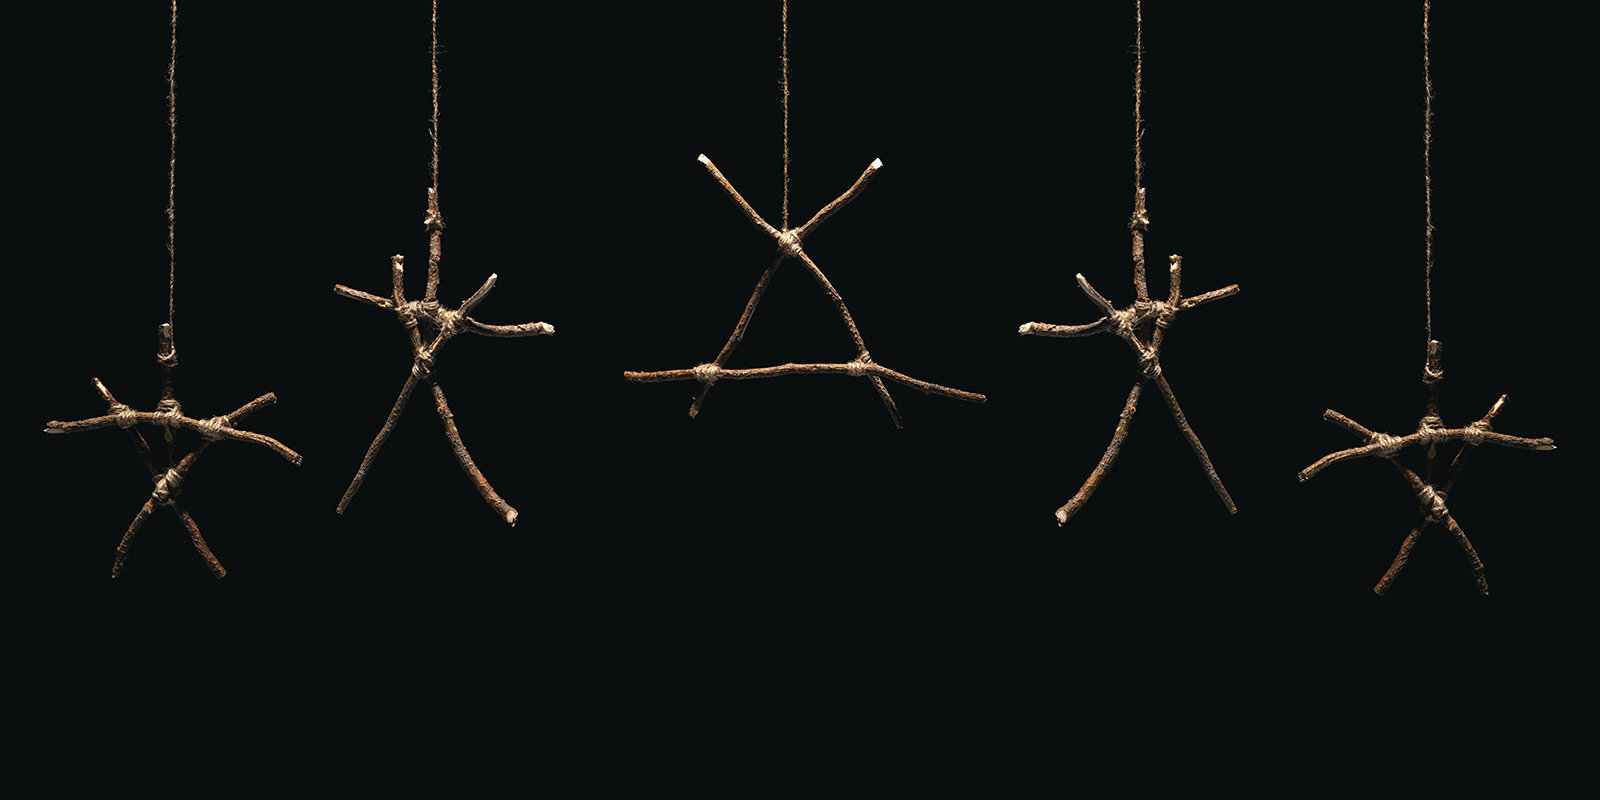 occult or witchcraft folk horror symbols made from sticks.